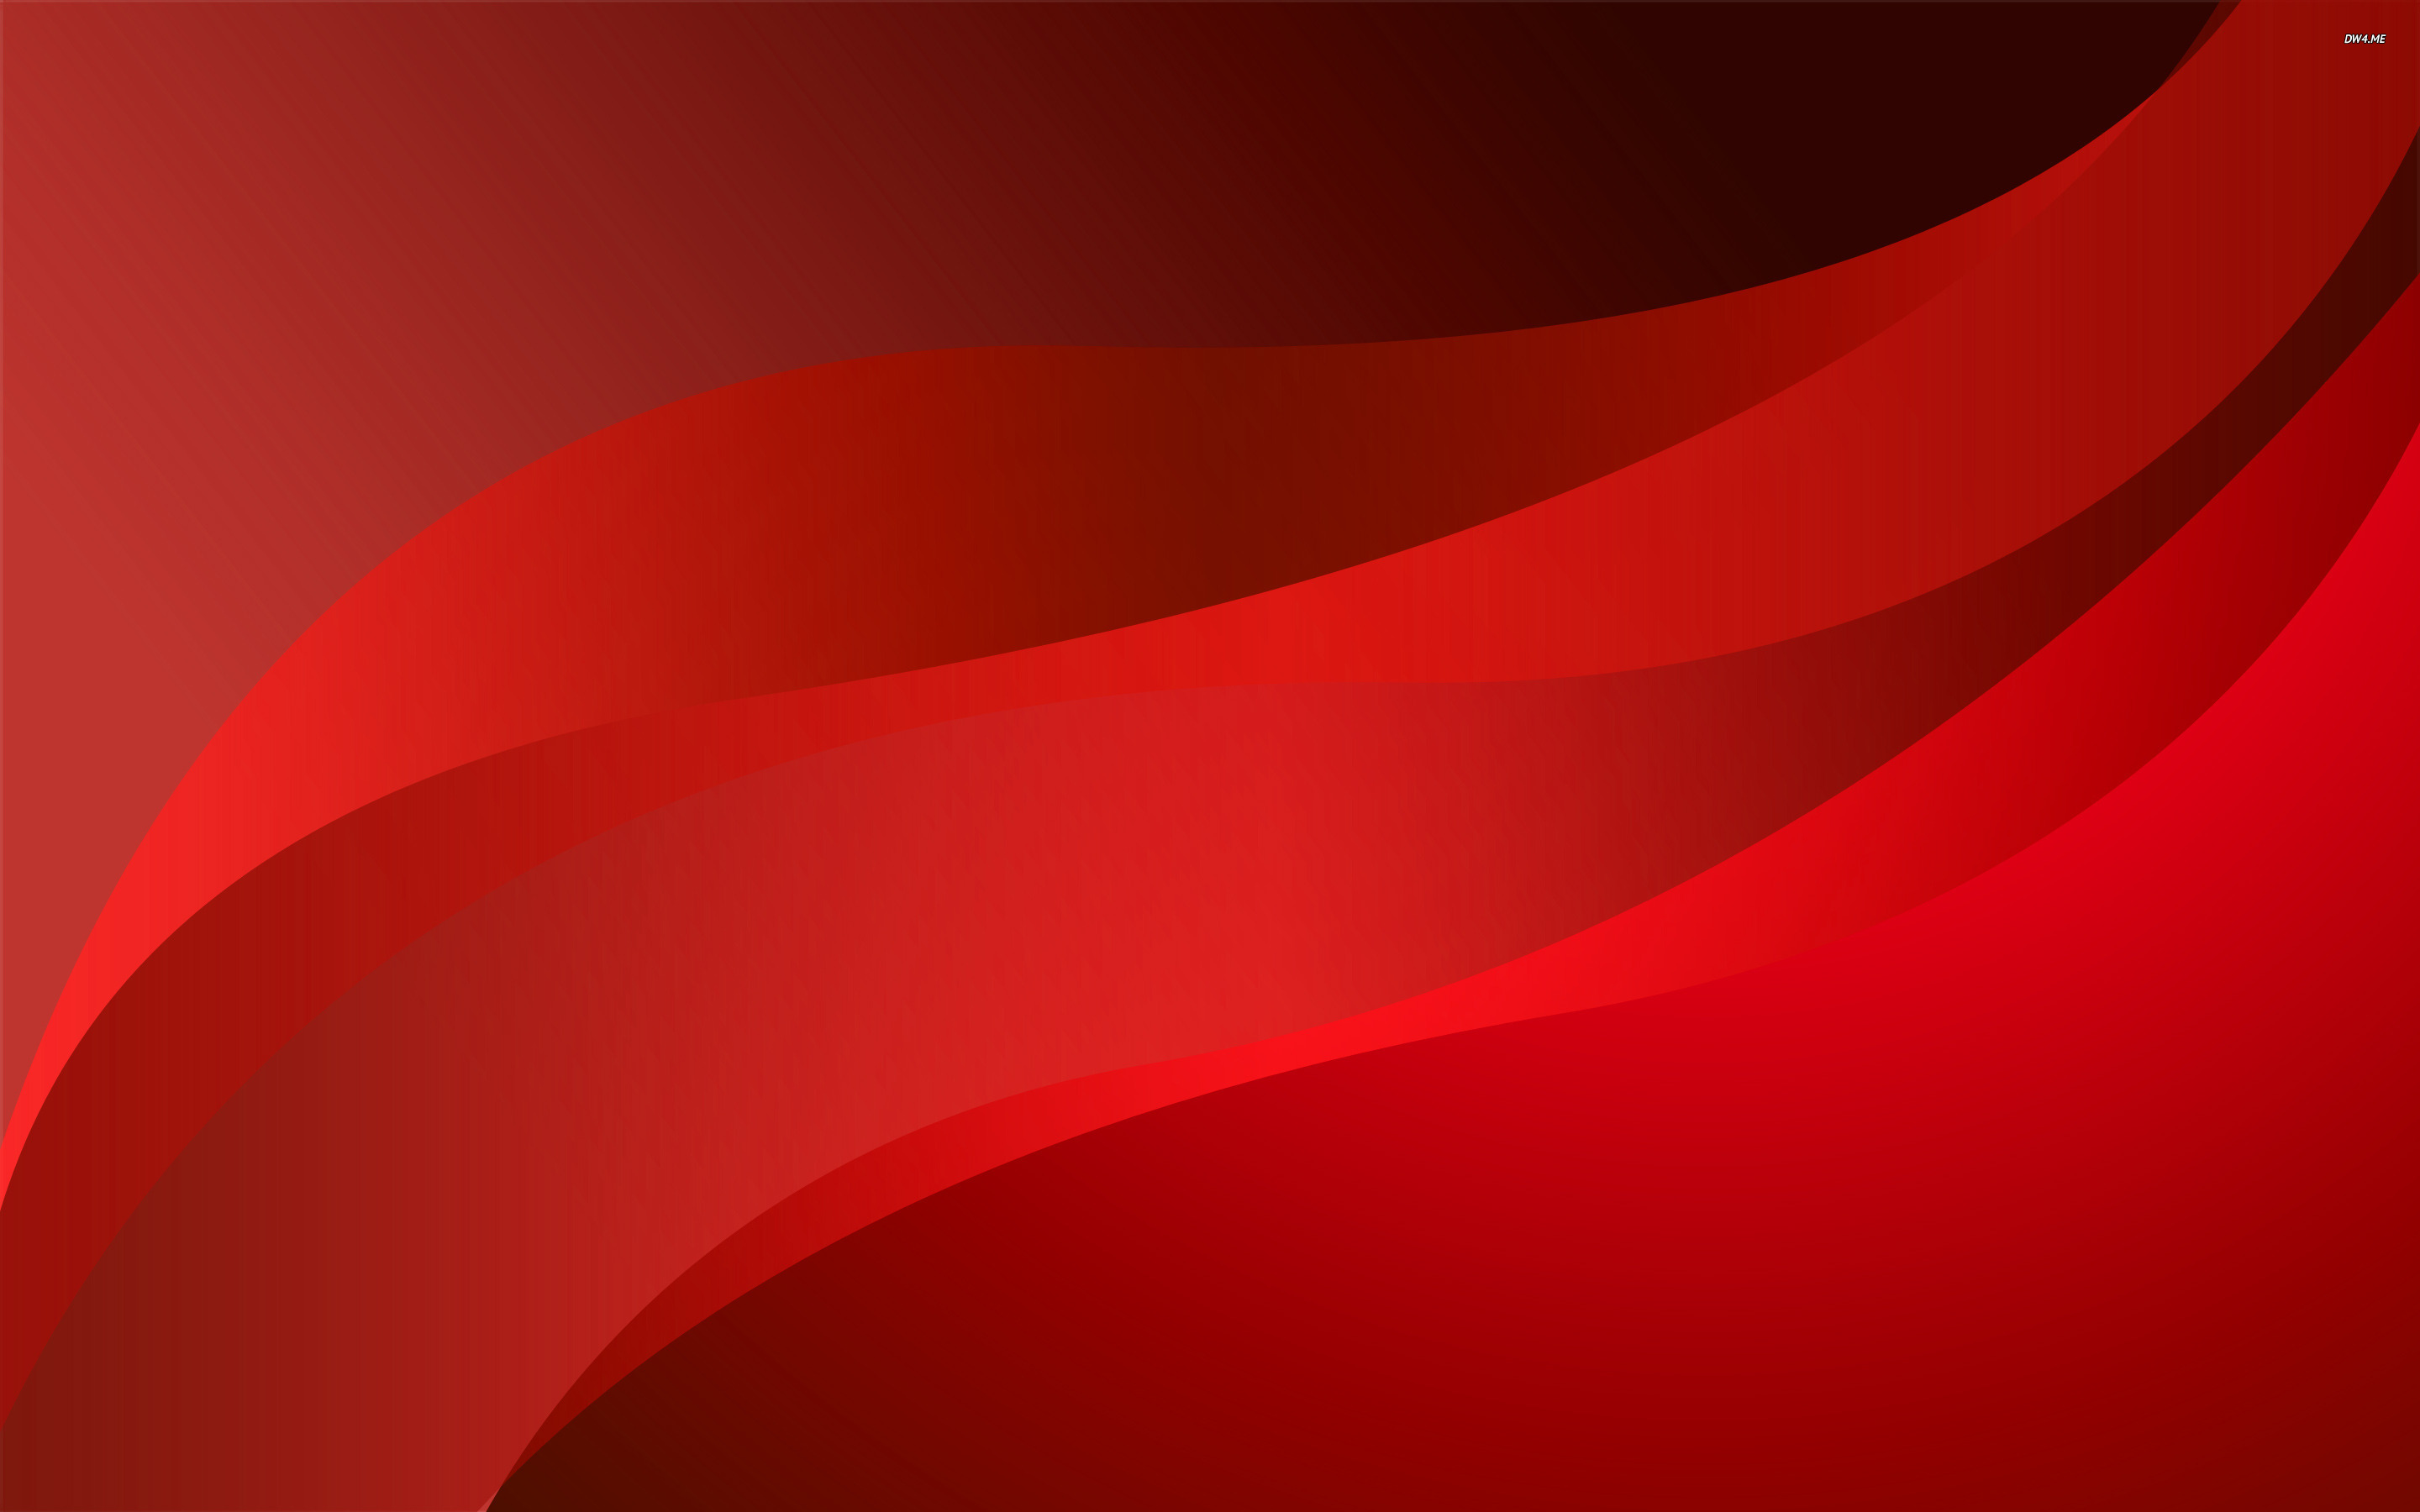 Cool Red And Black Themes 30 Hd Wallpaper 2880x1800